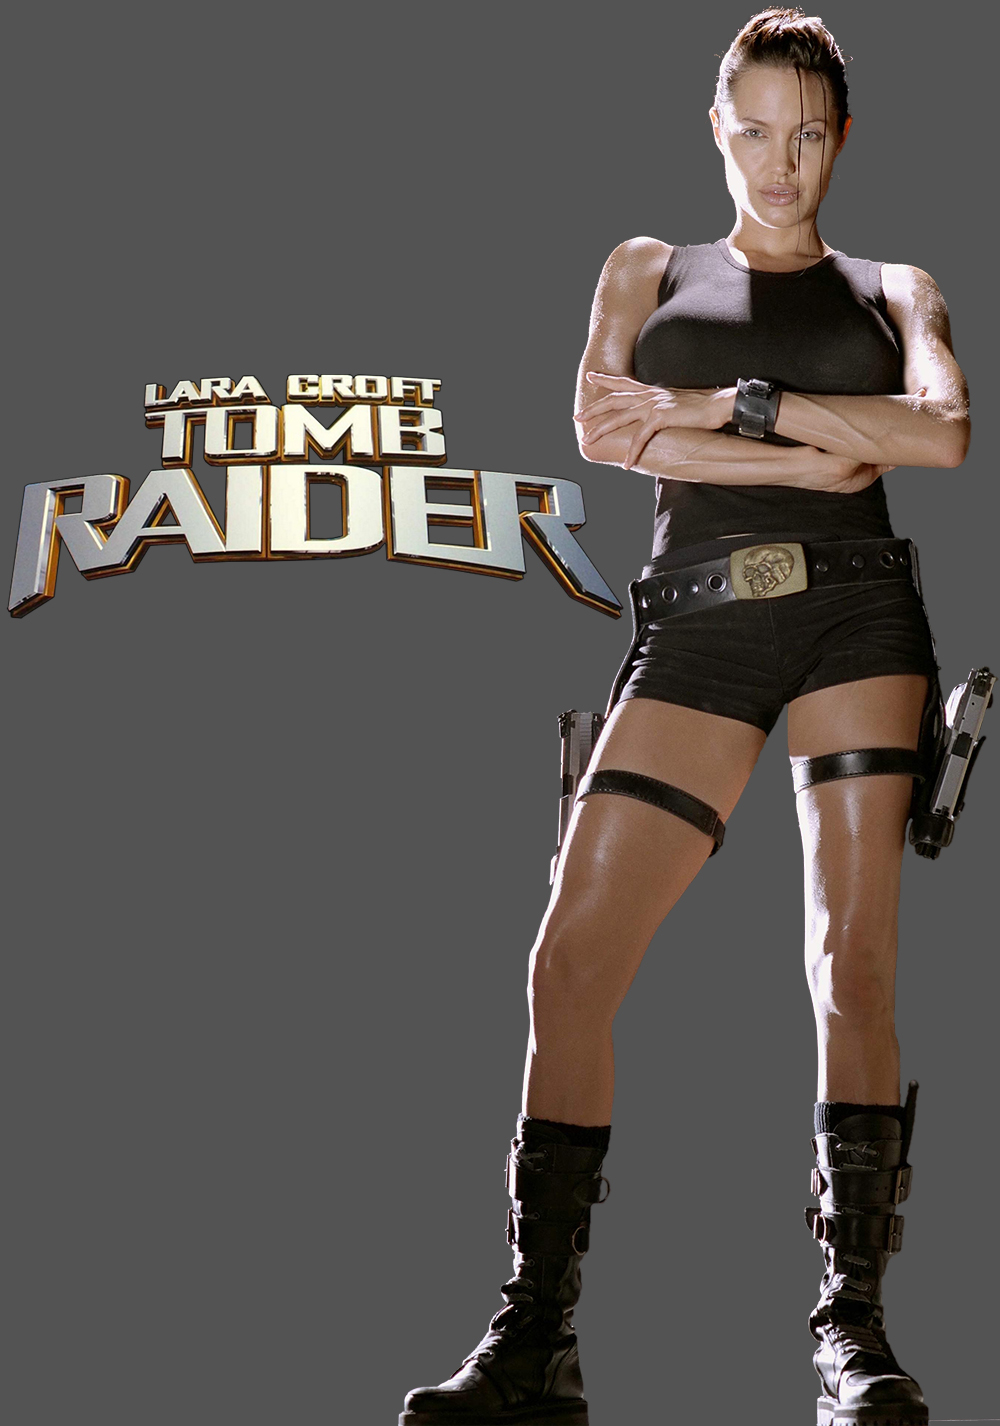 Lara Croft Tomb Raider Movie Poster Id 105783 Image Abyss